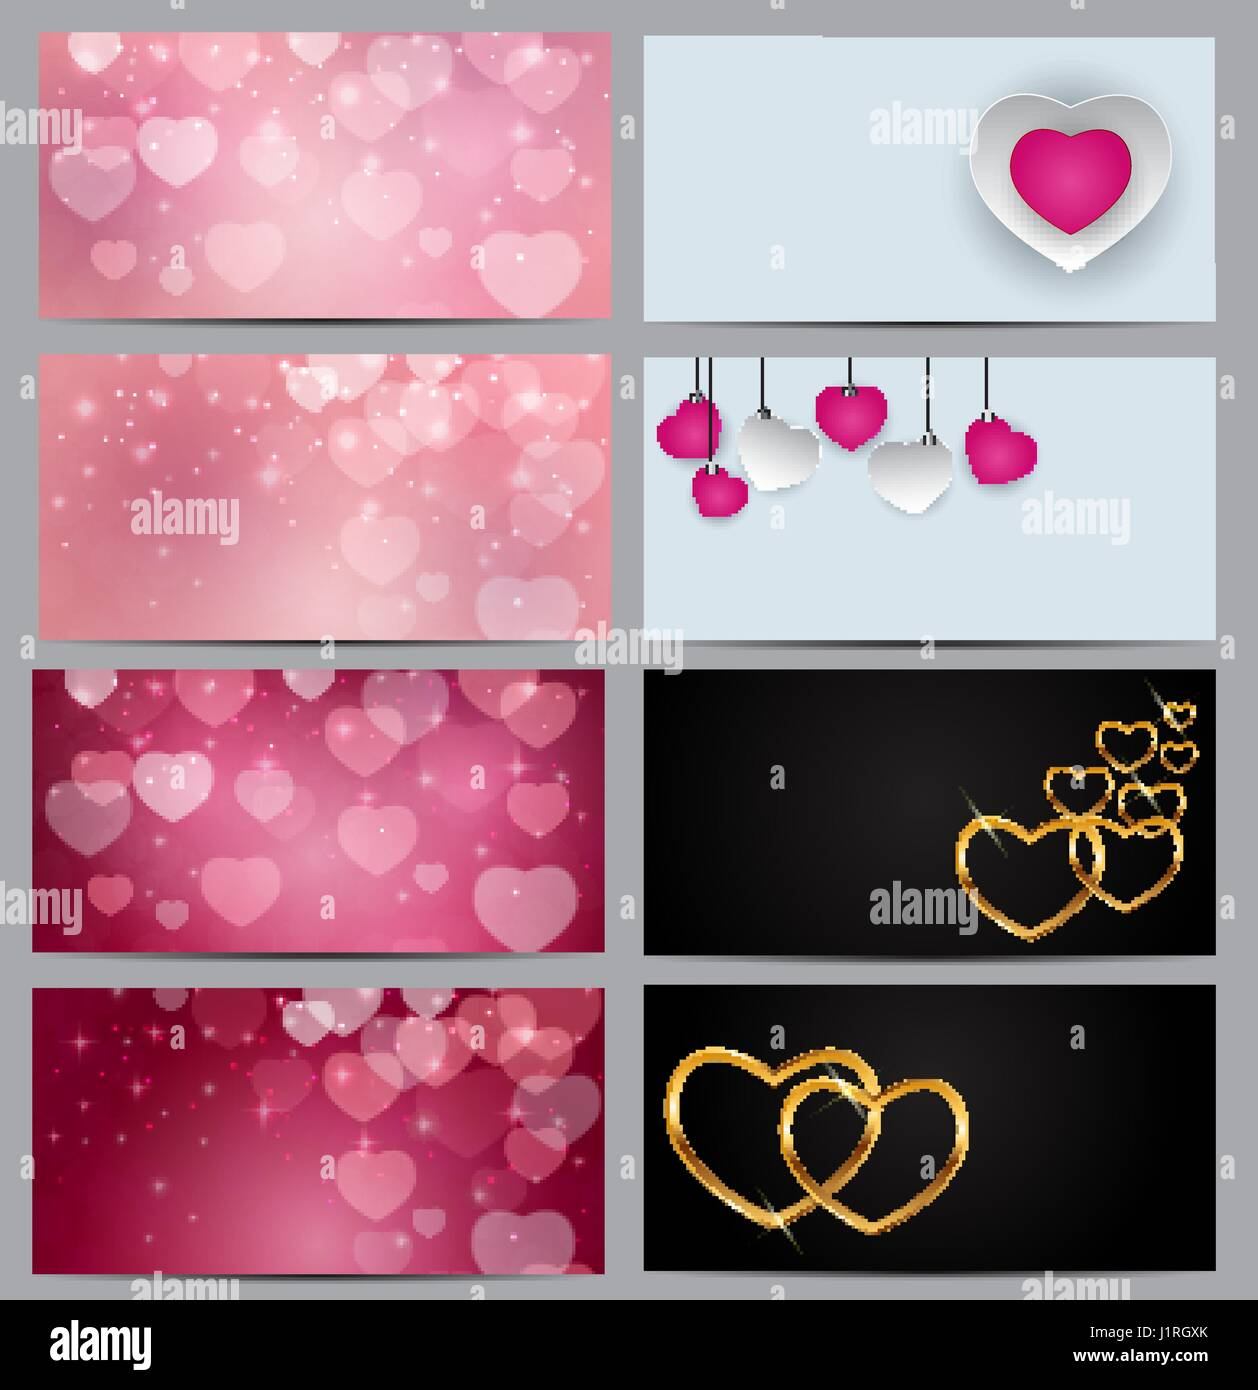 Gift Voucher Template For Your Business Valentine S Day Heart C